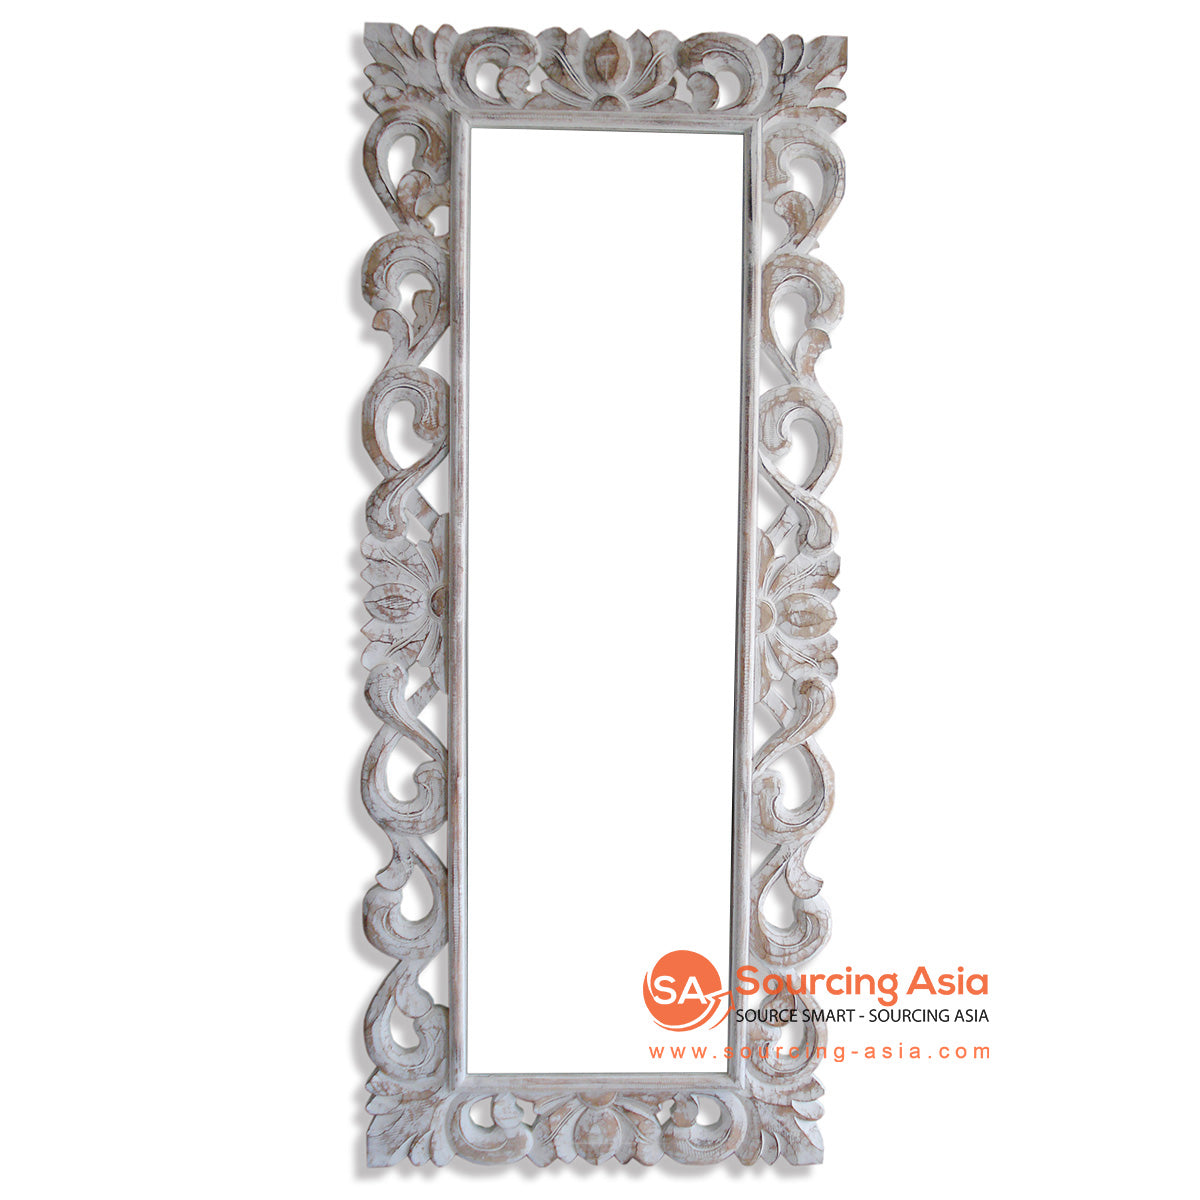 SSU004-DC WOODEN MIRROR WITH CARVING